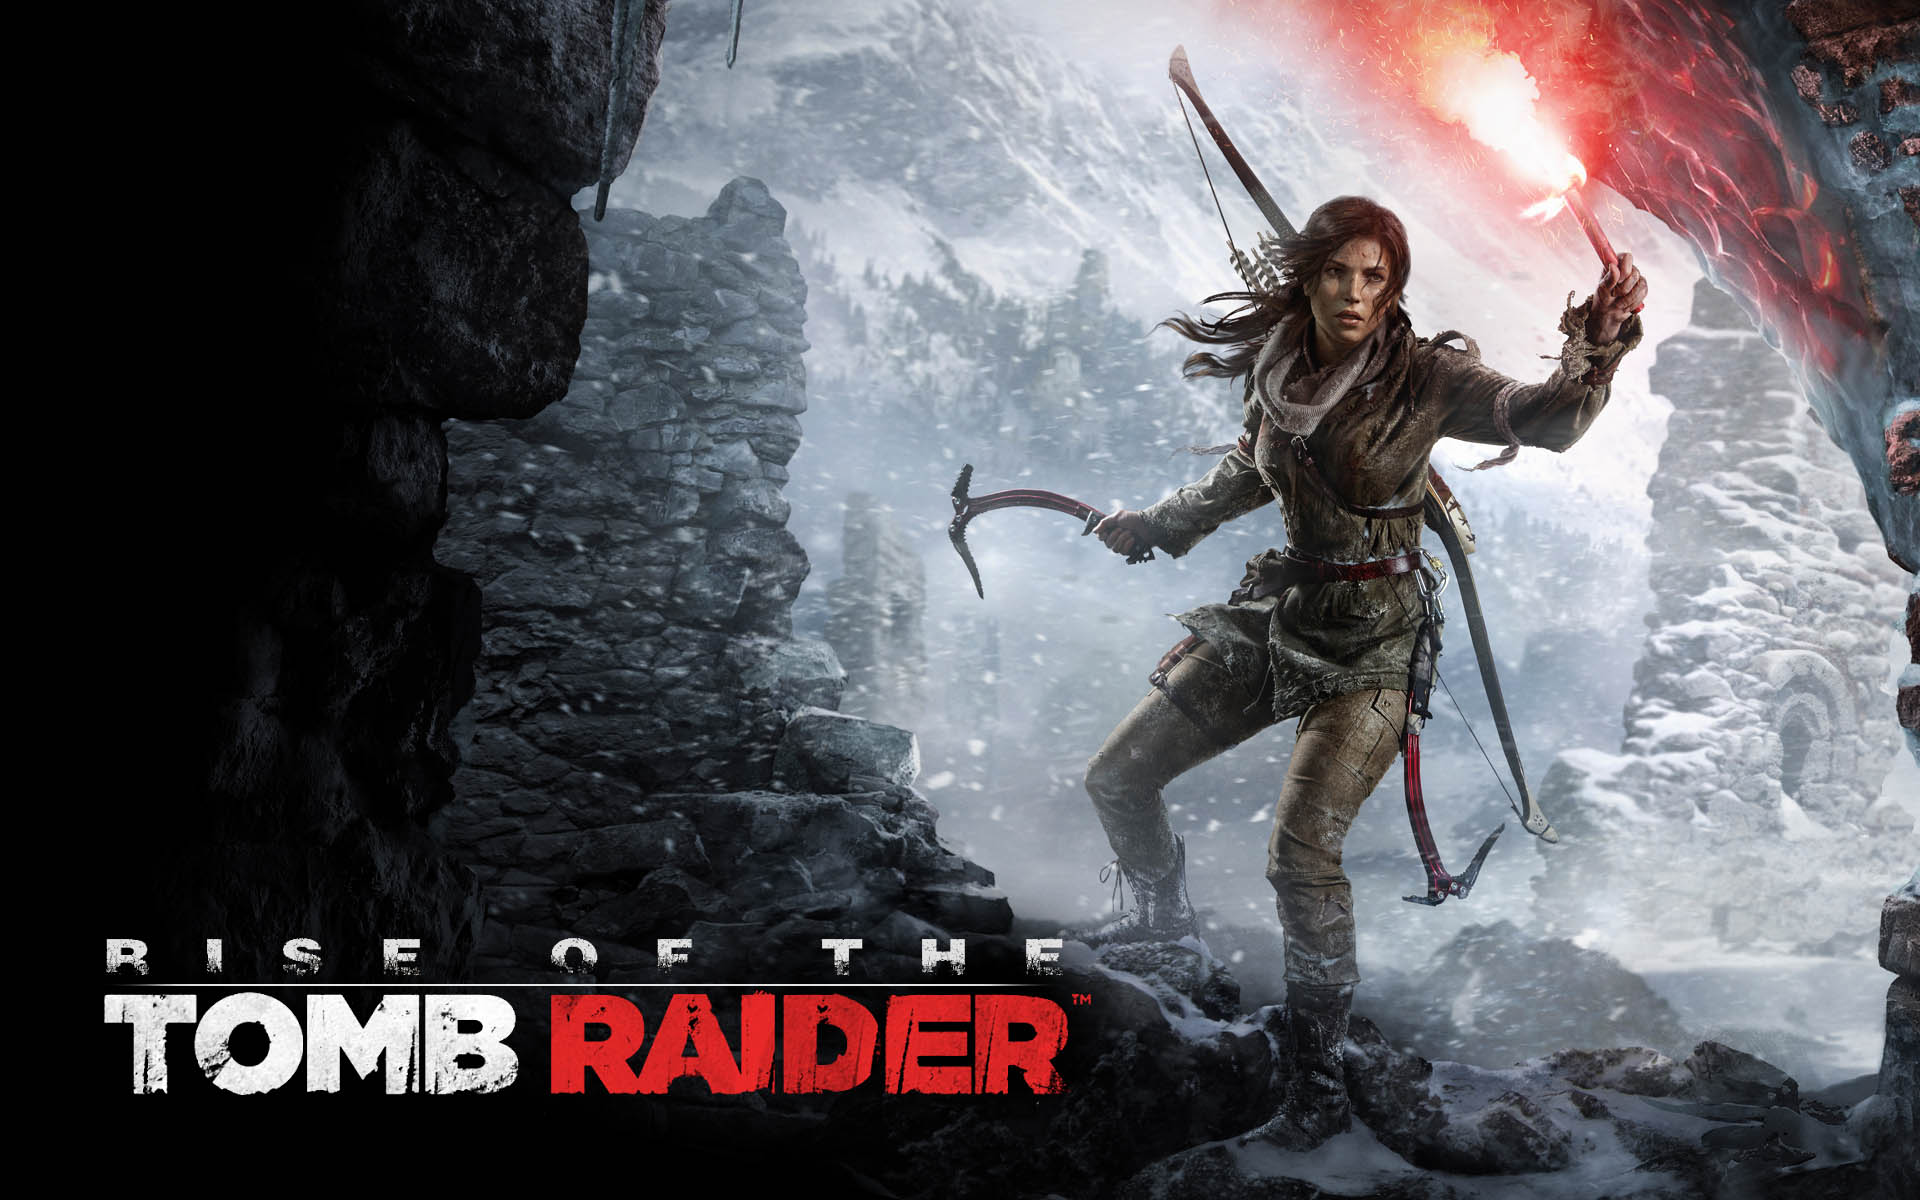 """Rise of the Tomb Raider"" PC Launch Date Leaked - That Was Fast"